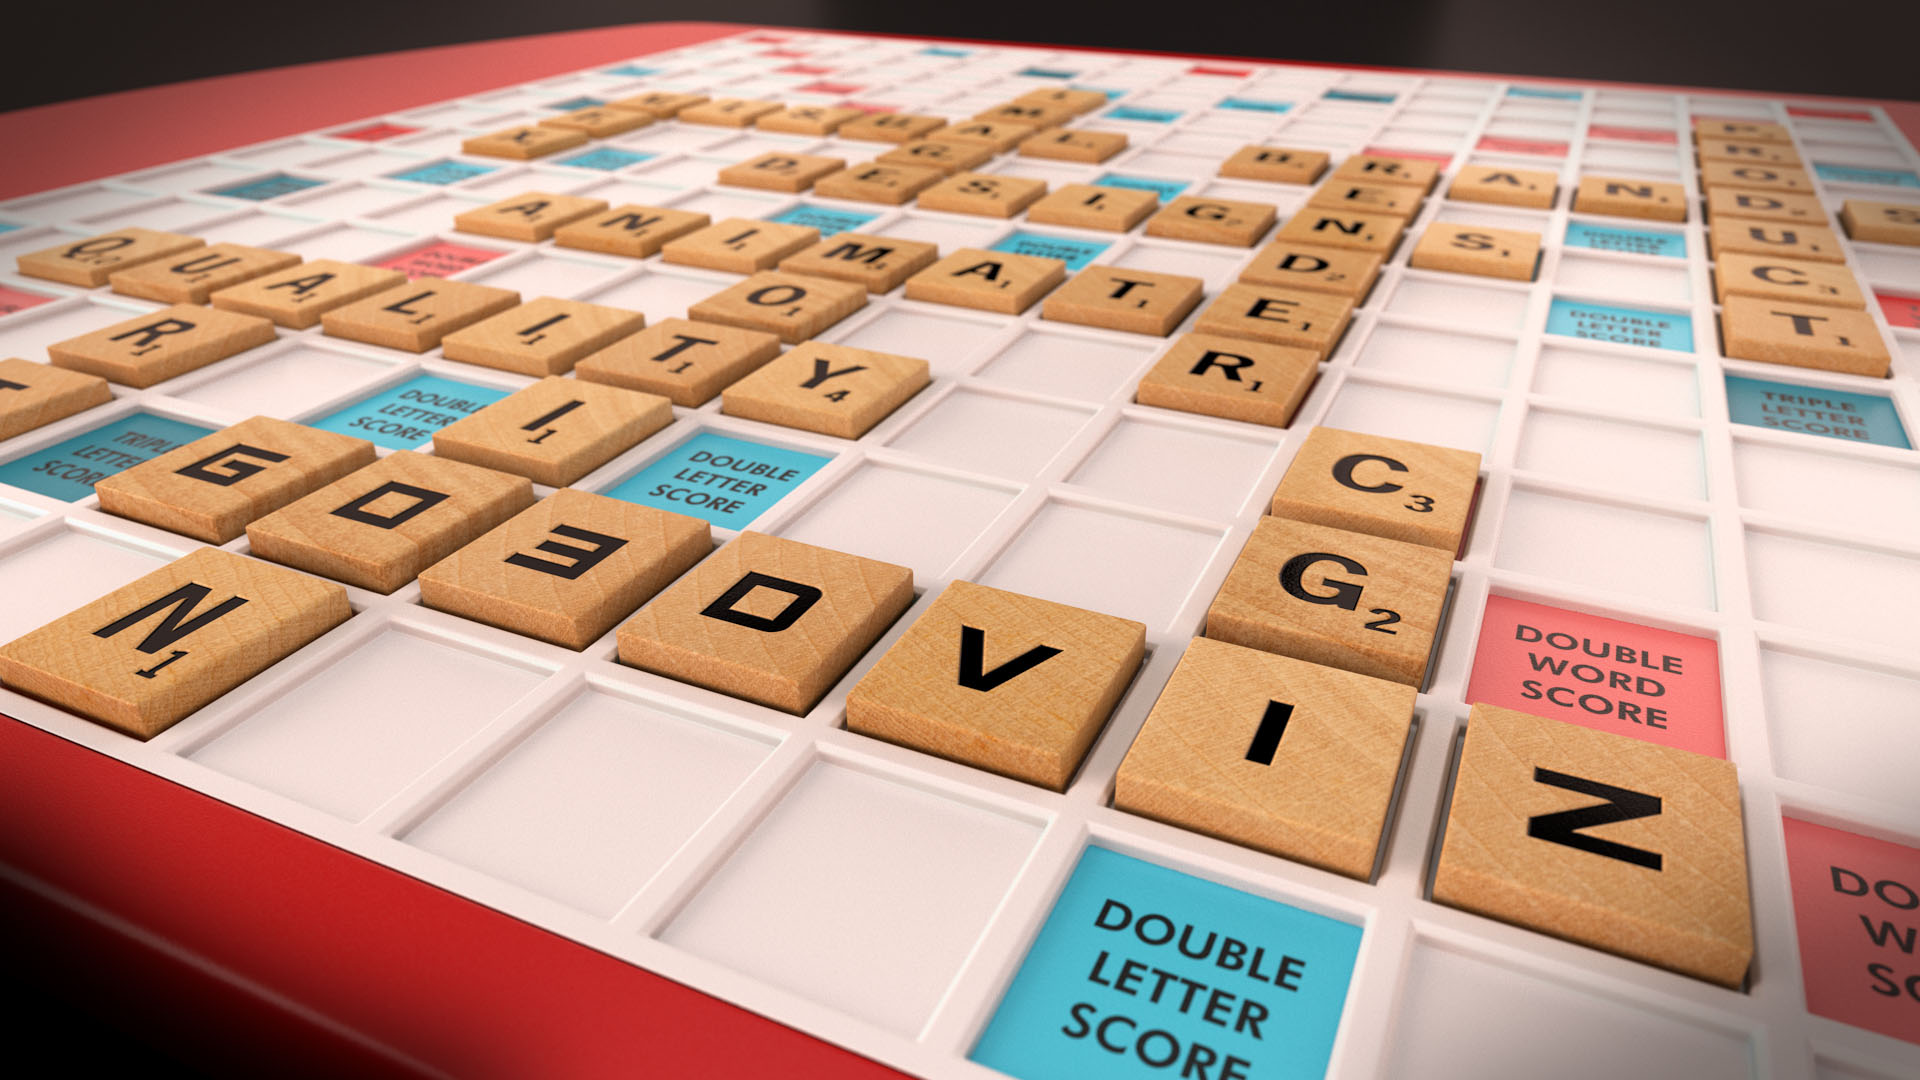 Custom scrabble board 3D rendering for Go3DViz's services